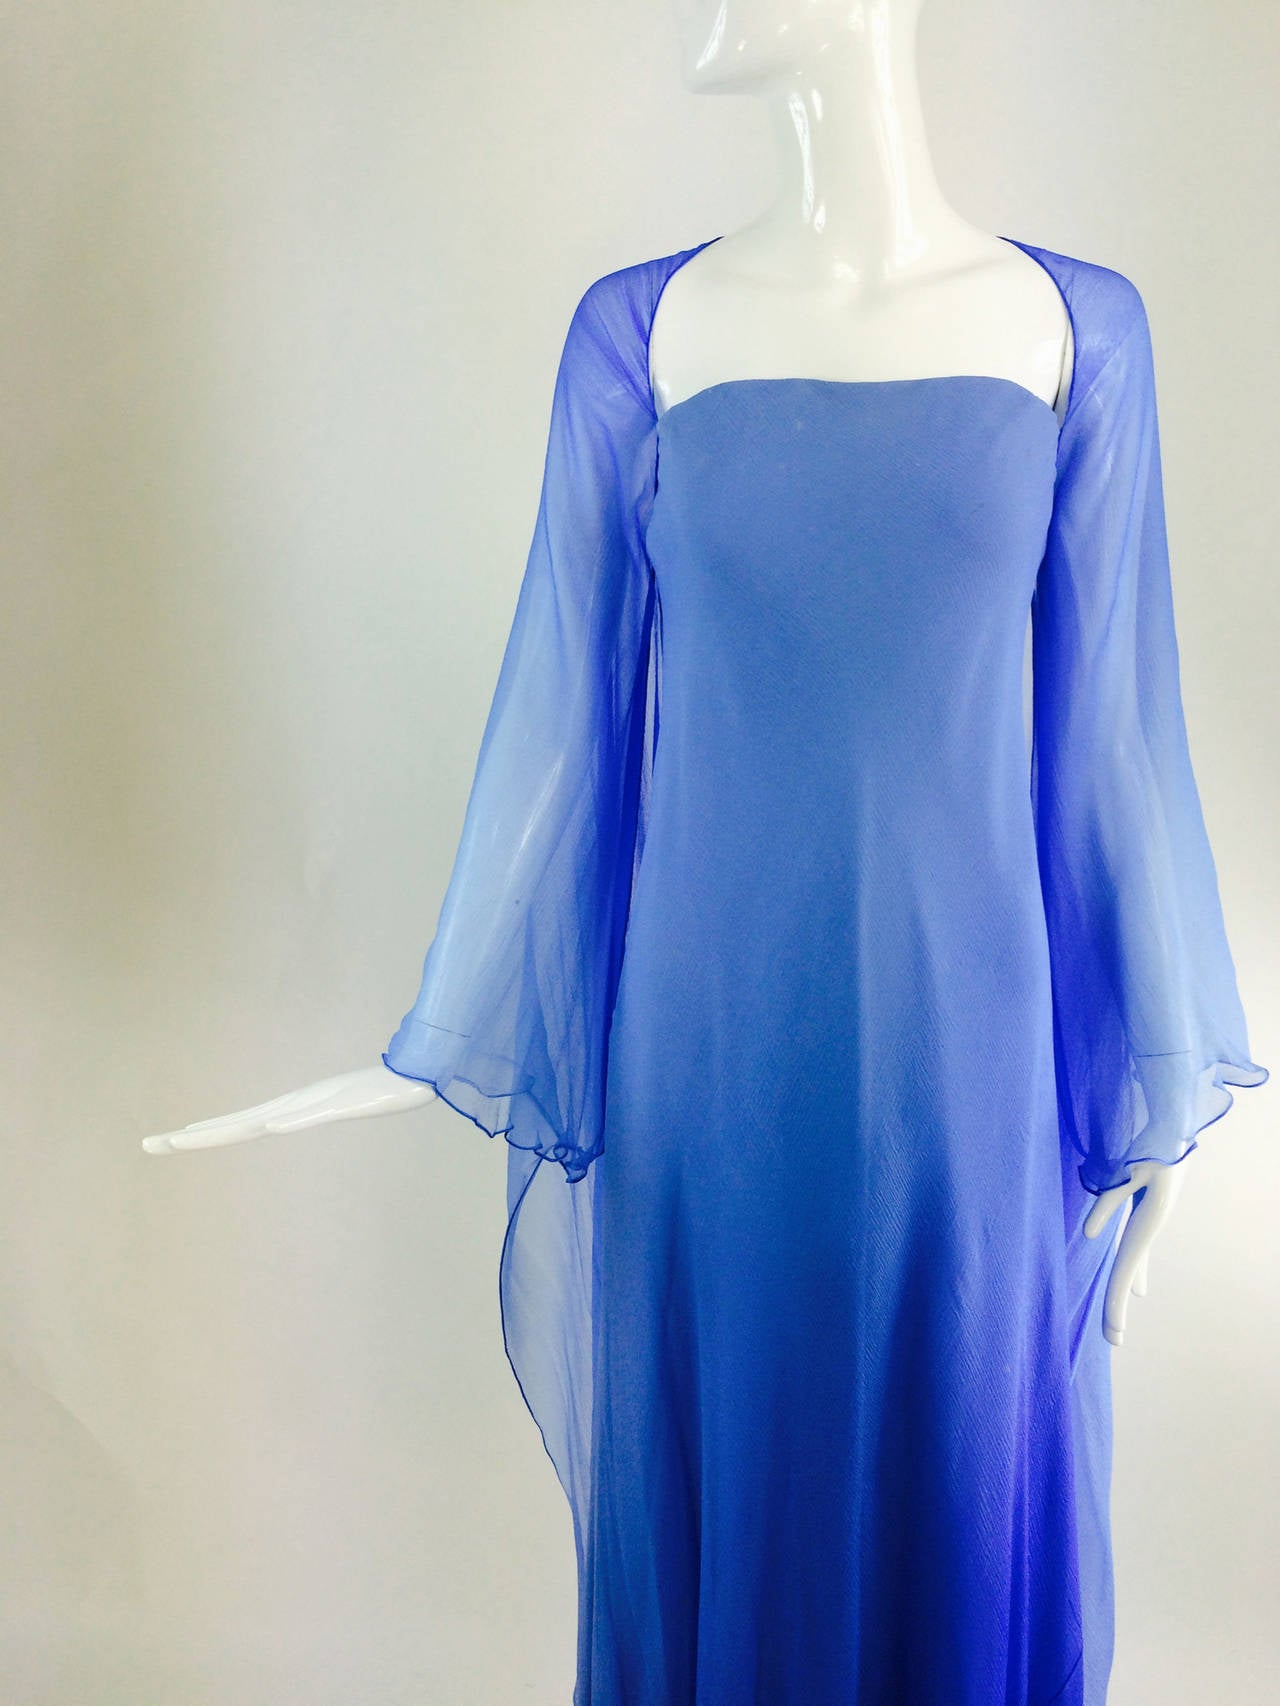 Fiandaca Cerulean Blue tonal silk chiffon gown 1990s For Sale 5